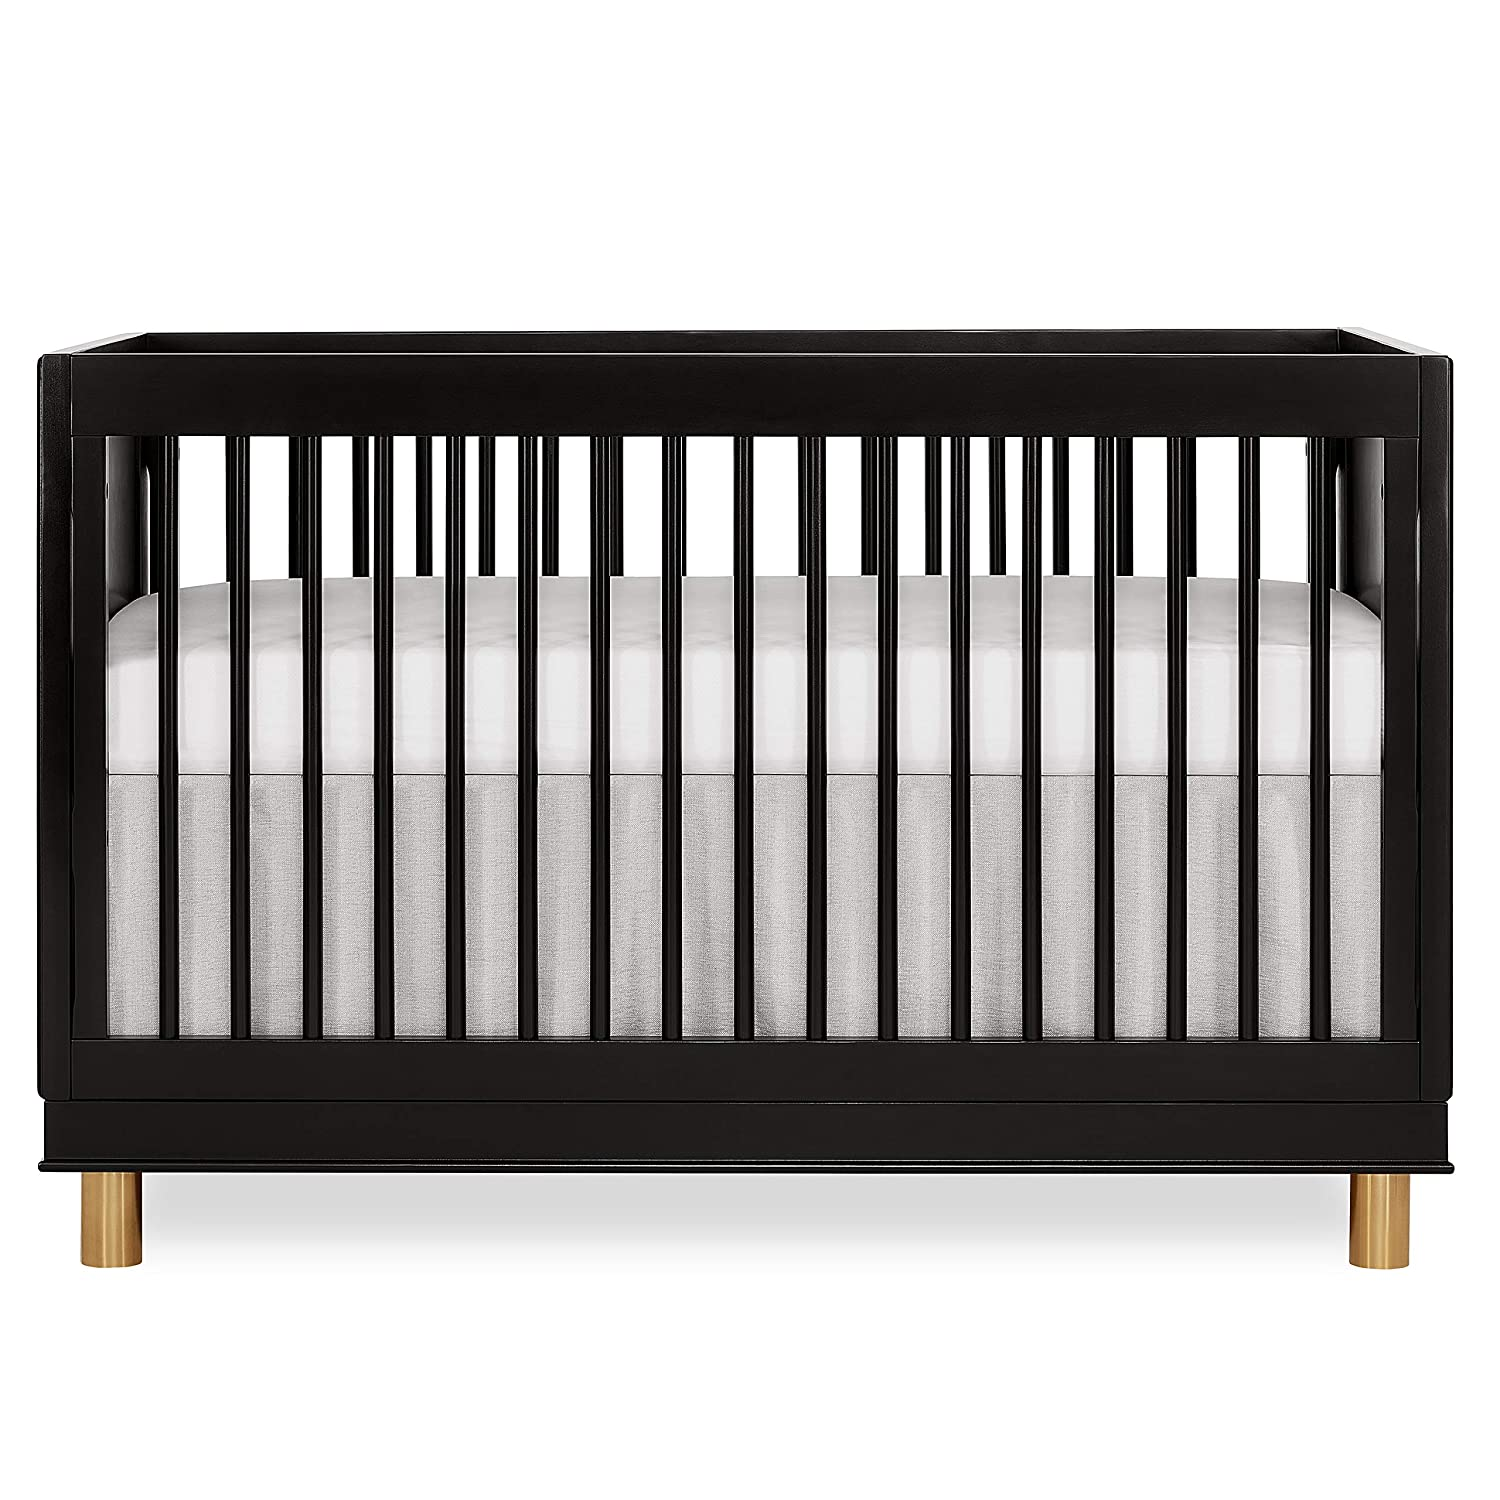 Evolur Loft Art Deco 3-in-1 Convertible Crib in Black, Greenguard Gold Certified